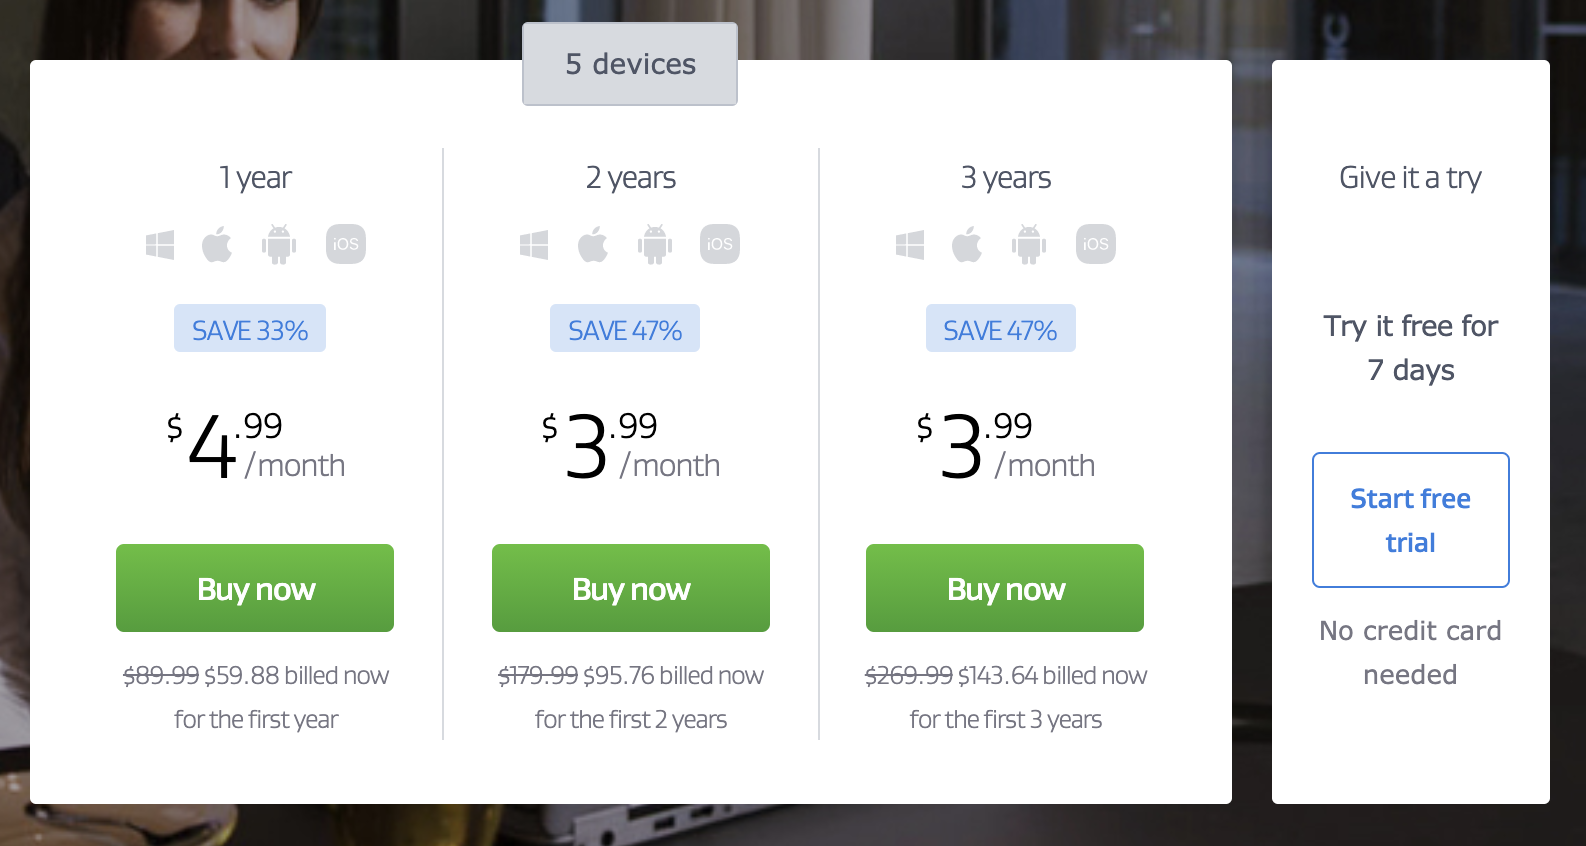 AVG Secure VPN pricing and plans